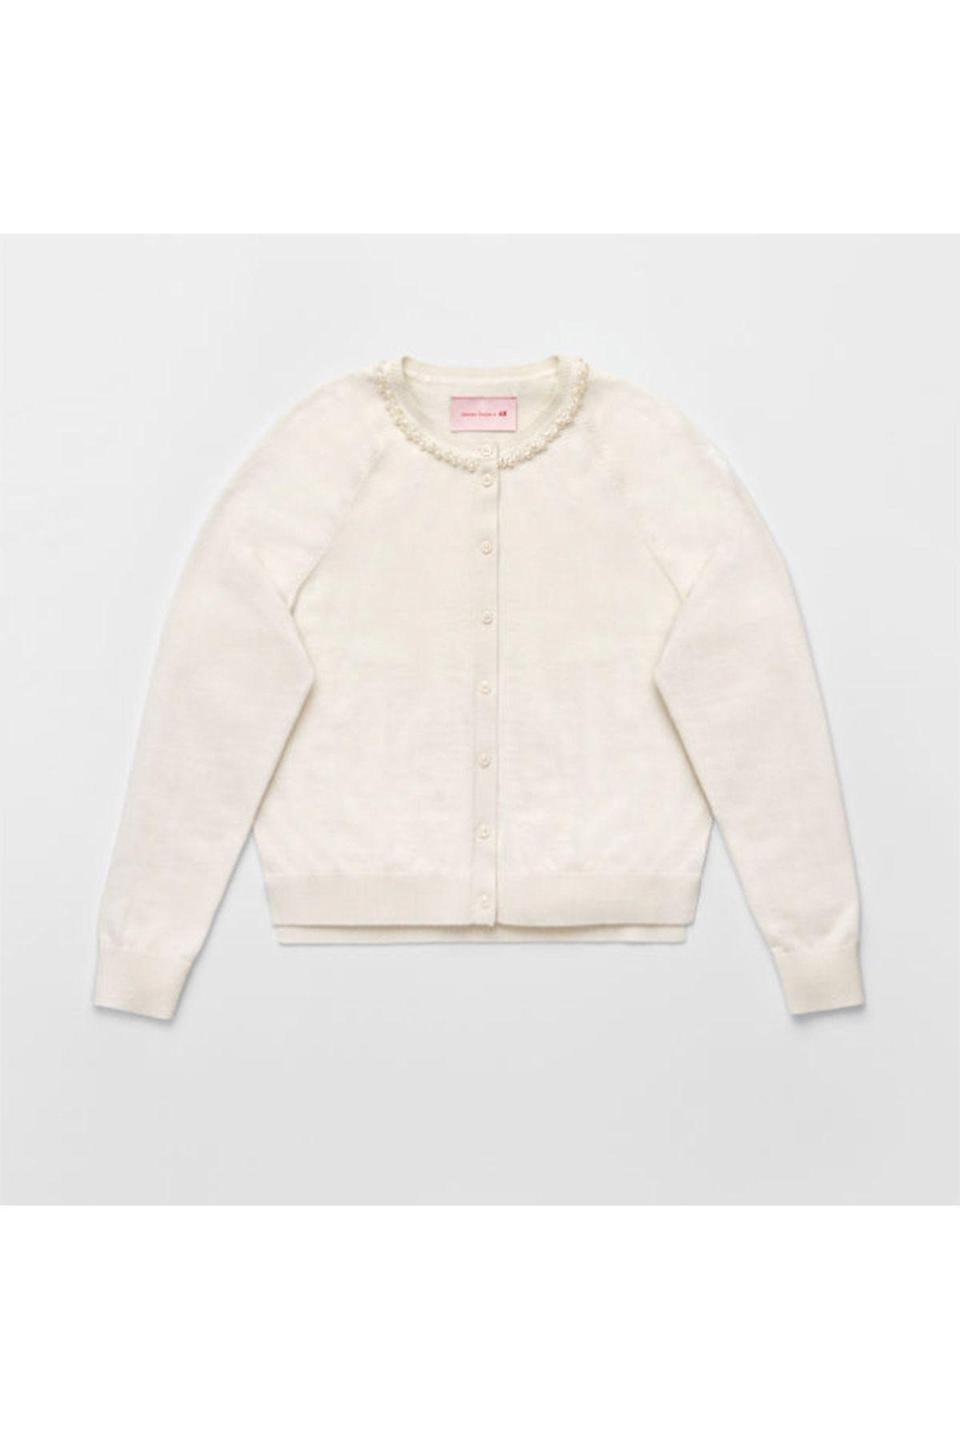 "<p><strong>H&M x Simone Rocha </strong></p><p>hm.com</p><p><strong>$99.00</strong></p><p><a href=""https://go.redirectingat.com?id=74968X1596630&url=https%3A%2F%2Fwww2.hm.com%2Fen_us%2Fproductpage.0926587003.html&sref=https%3A%2F%2Fwww.townandcountrymag.com%2Fstyle%2Ffashion-trends%2Fg35800778%2Fsimone-rocha-hm-launch-dreamy-collaboration%2F"" rel=""nofollow noopener"" target=""_blank"" data-ylk=""slk:Shop Now"" class=""link rapid-noclick-resp"">Shop Now</a></p>"